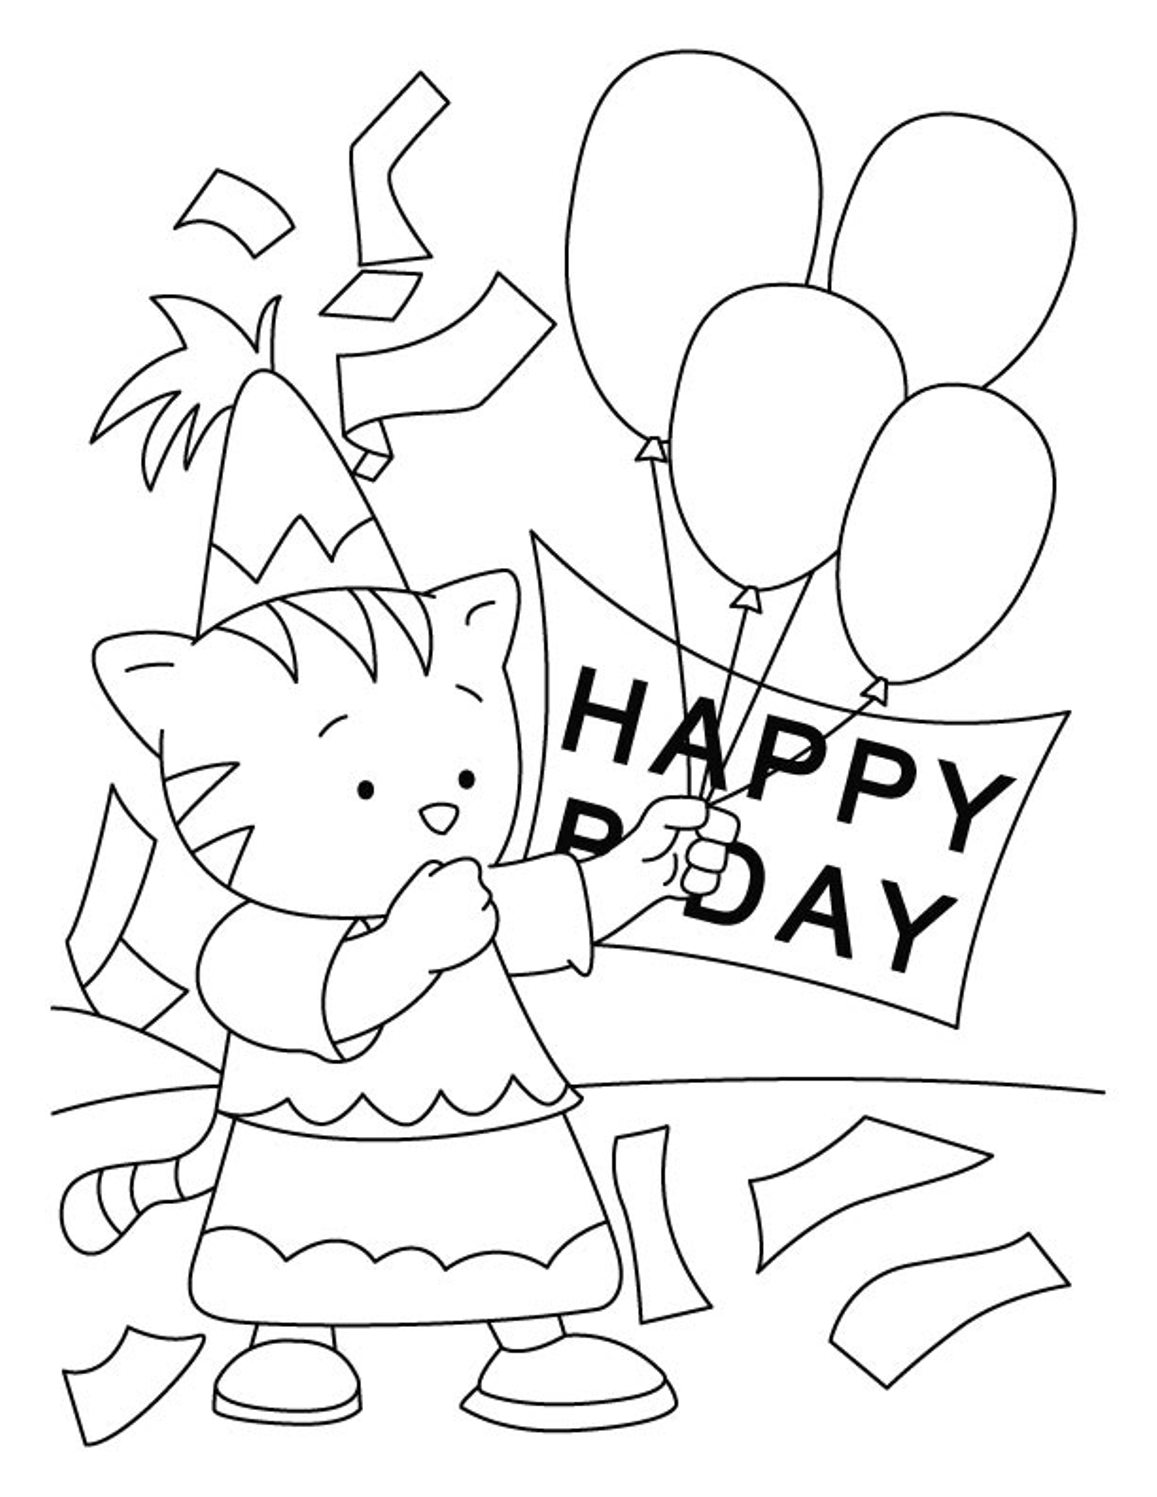 happy birthday elmo coloring pages ; Happy-birthday-coloring-pages-free-printable-download-for-kids-animals-balloon-cake-bird-elmo-disney-activity-sheets-boy-girl-crafts-9